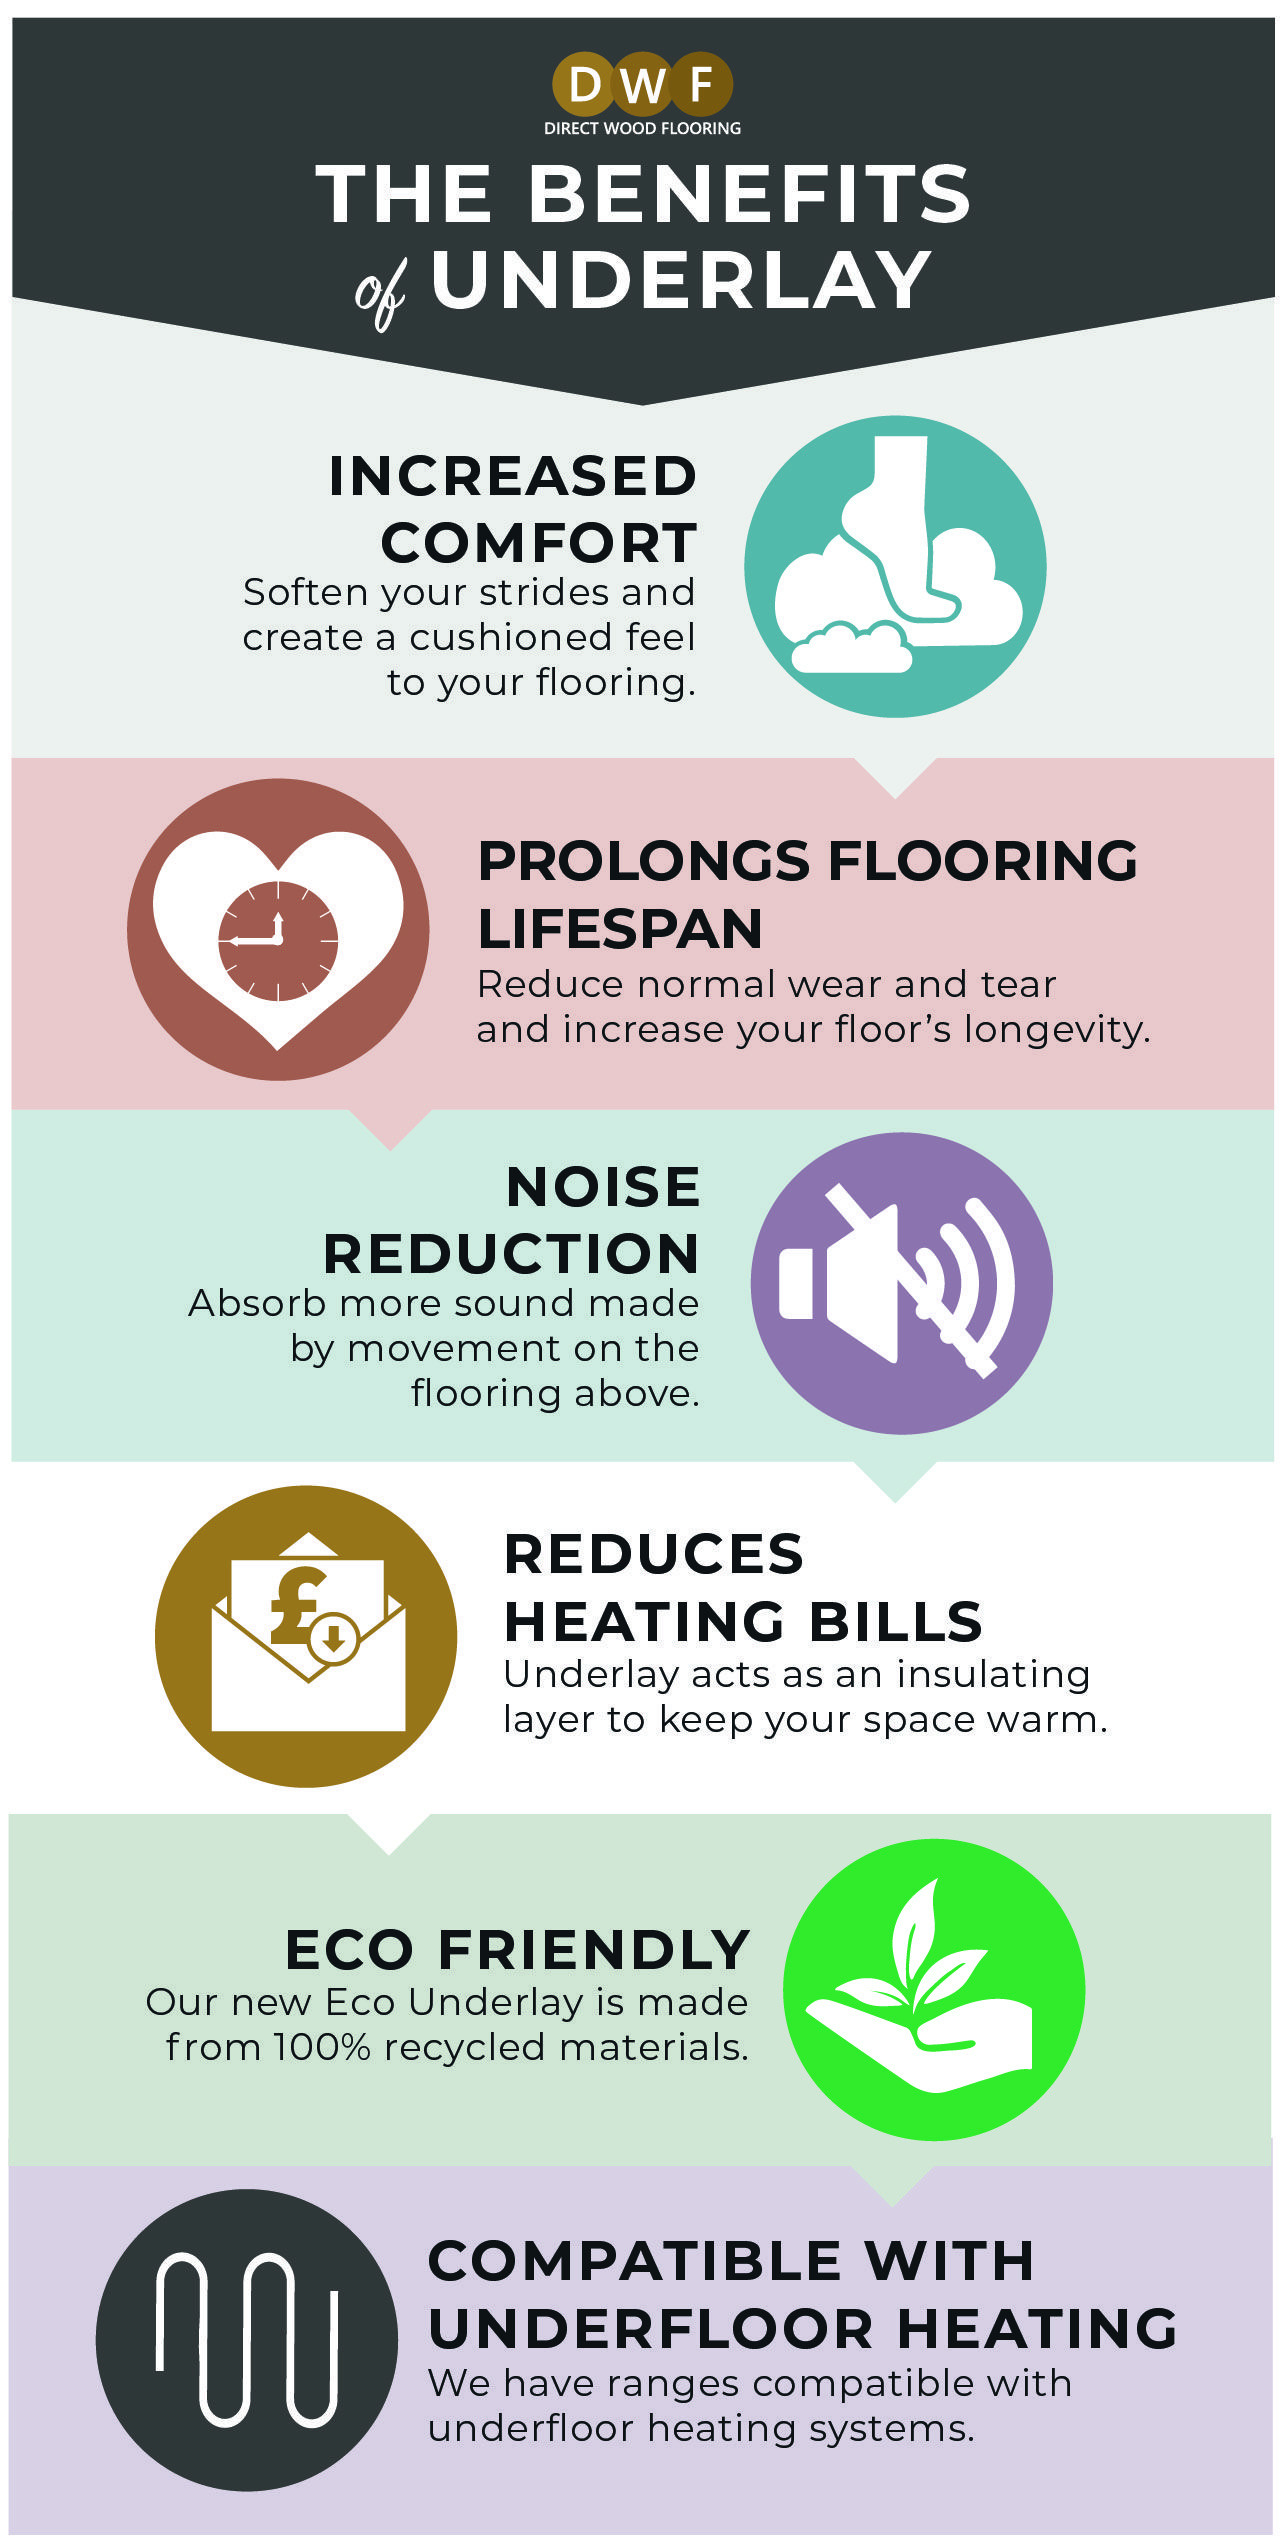 Purchasing underlay is dependant on the flooring you choose. If you require underlay, its host of benefits are amazing in practicality, and will enhance your flooring 🙌 To find out if you need underlay and what it can do for you, click for more in our blog 👇 #FlooringInstallation #Underlay #Flooring #LaminateUnderlay #WoodUnderlay #HardFlooringUnderlay #LuxuryFlooring #InteriorStyling #DecorDailyDose #HomeDecor #DIYHomeDecor #FurnitureDecor #HouseTour #FindItStyleIt #InteriorDesign